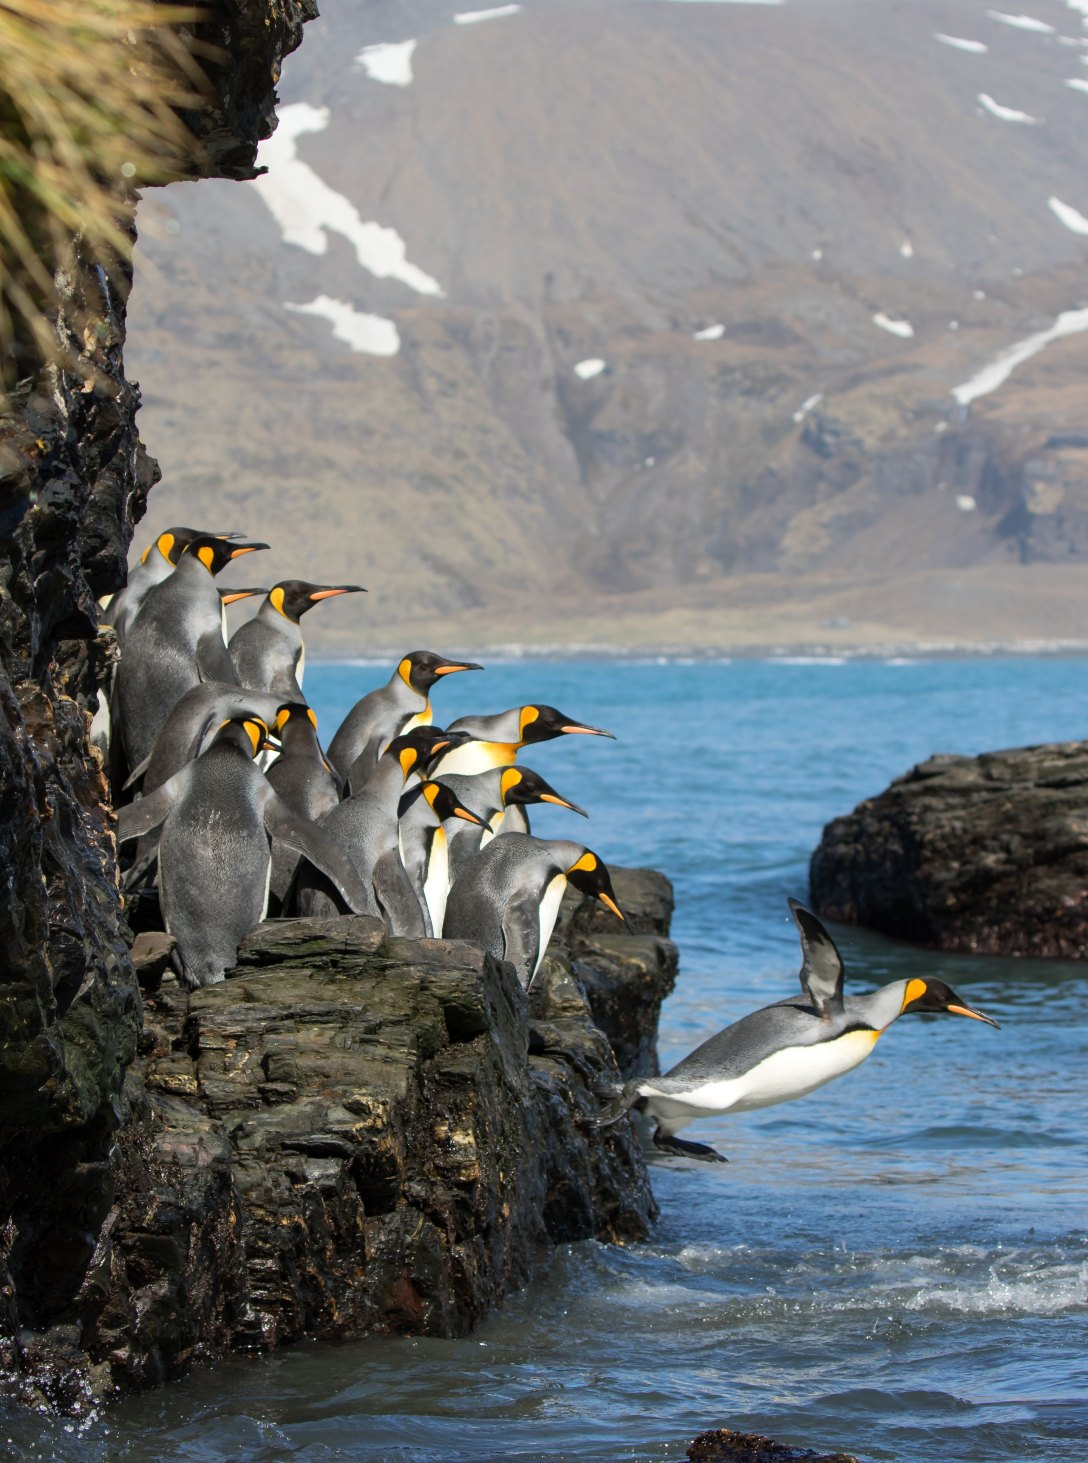 penguins waiting to jump off rock into ocean